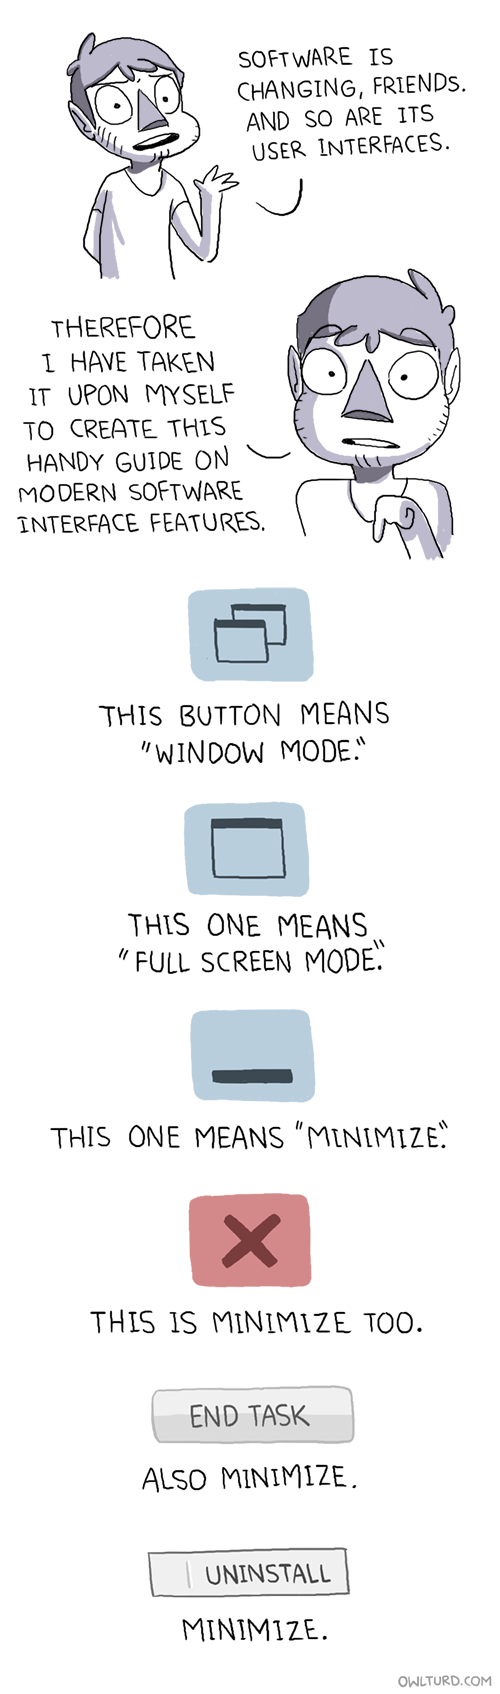 Everything is minimize